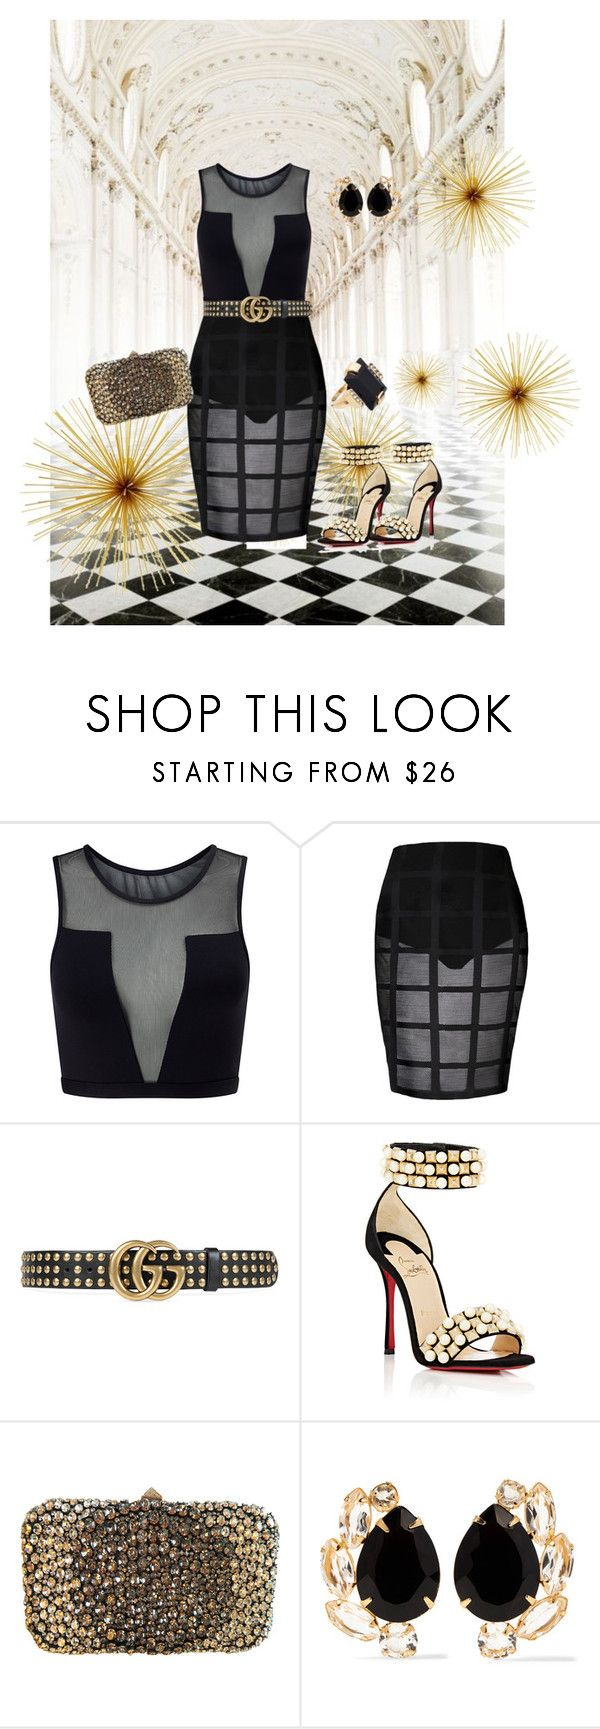 """lady louca"" by ritinha27 on Polyvore featuring Oxford, Varley, Gucci, Christian Louboutin, Valentino, Bounkit and Marni"